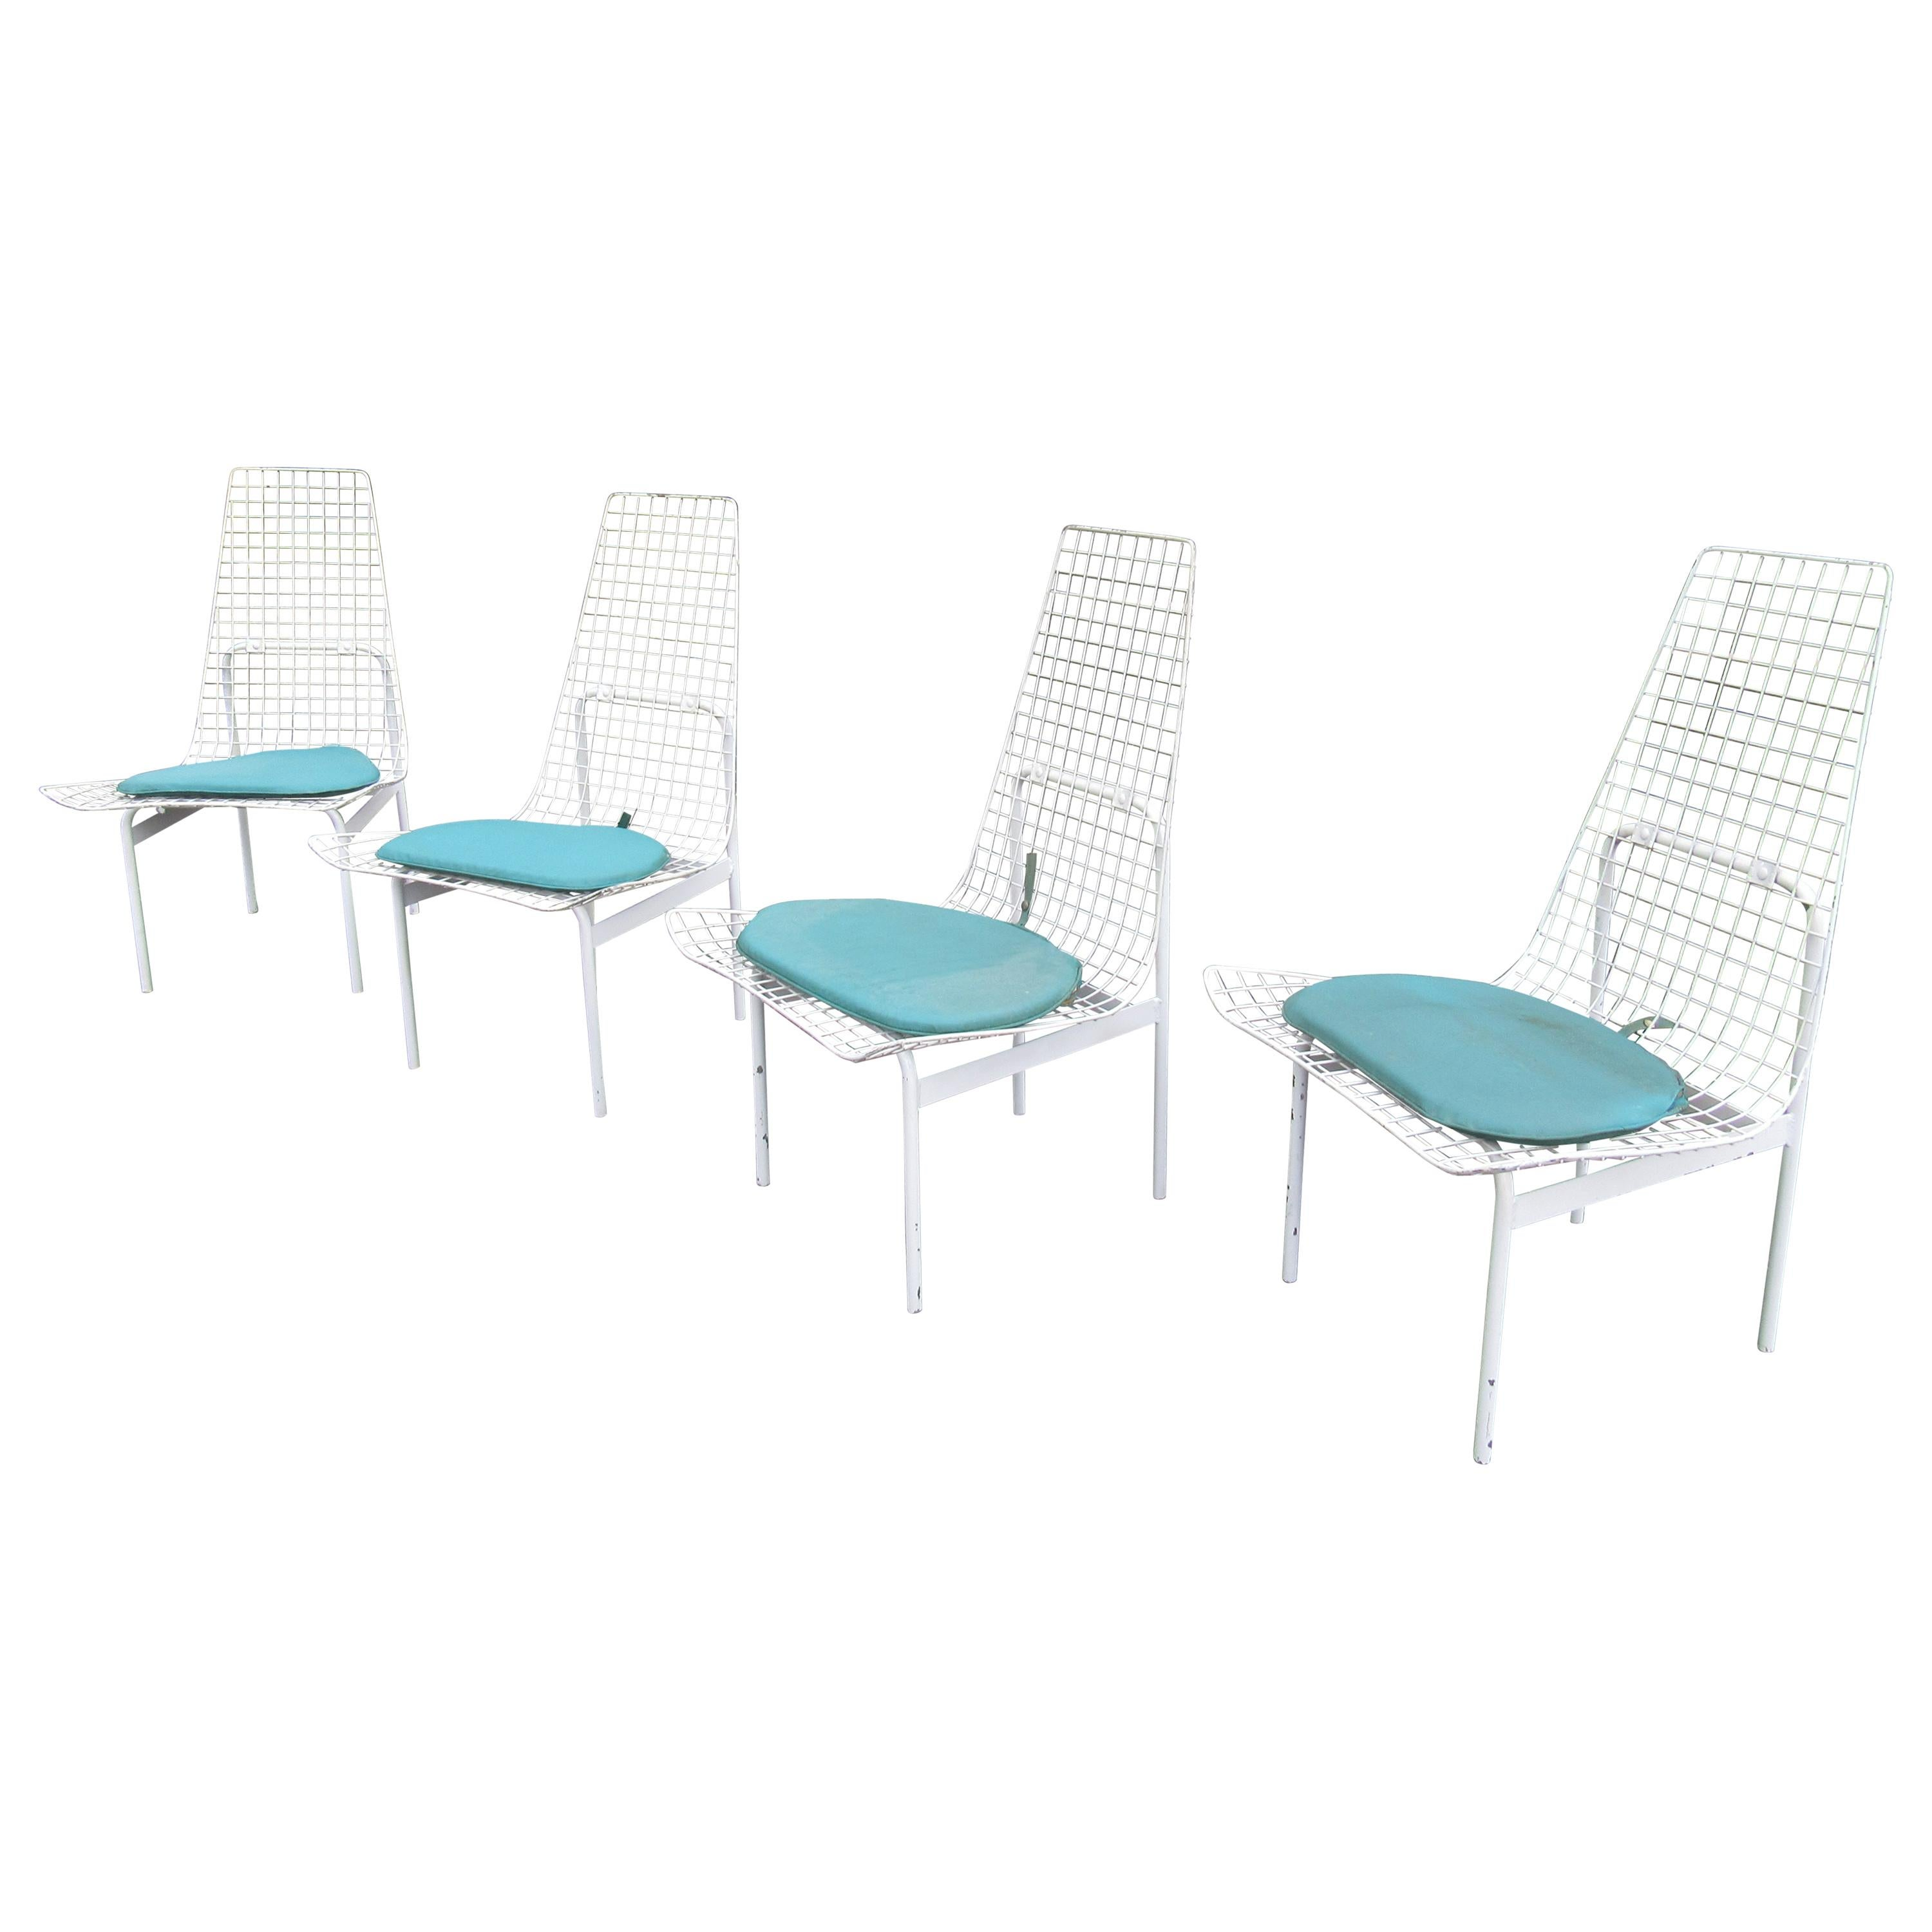 Vintage Modern Wire Mesh Patio Chairs, Set of 4